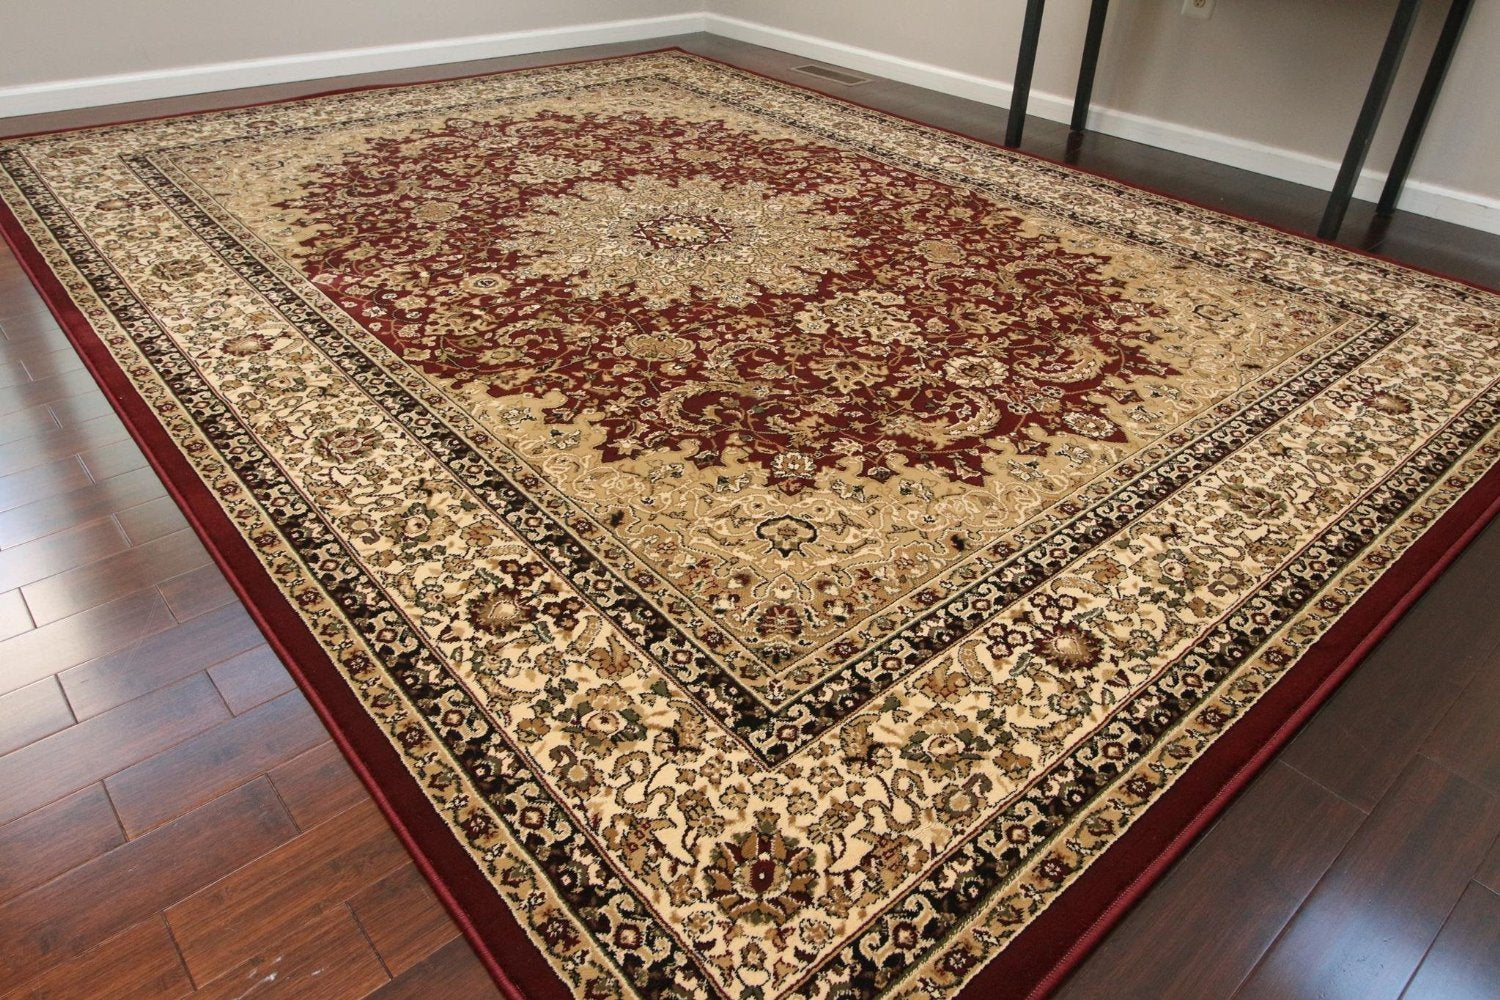 Red Isfahan Premium Quality Oriental Area Rugs 5x8 8x11